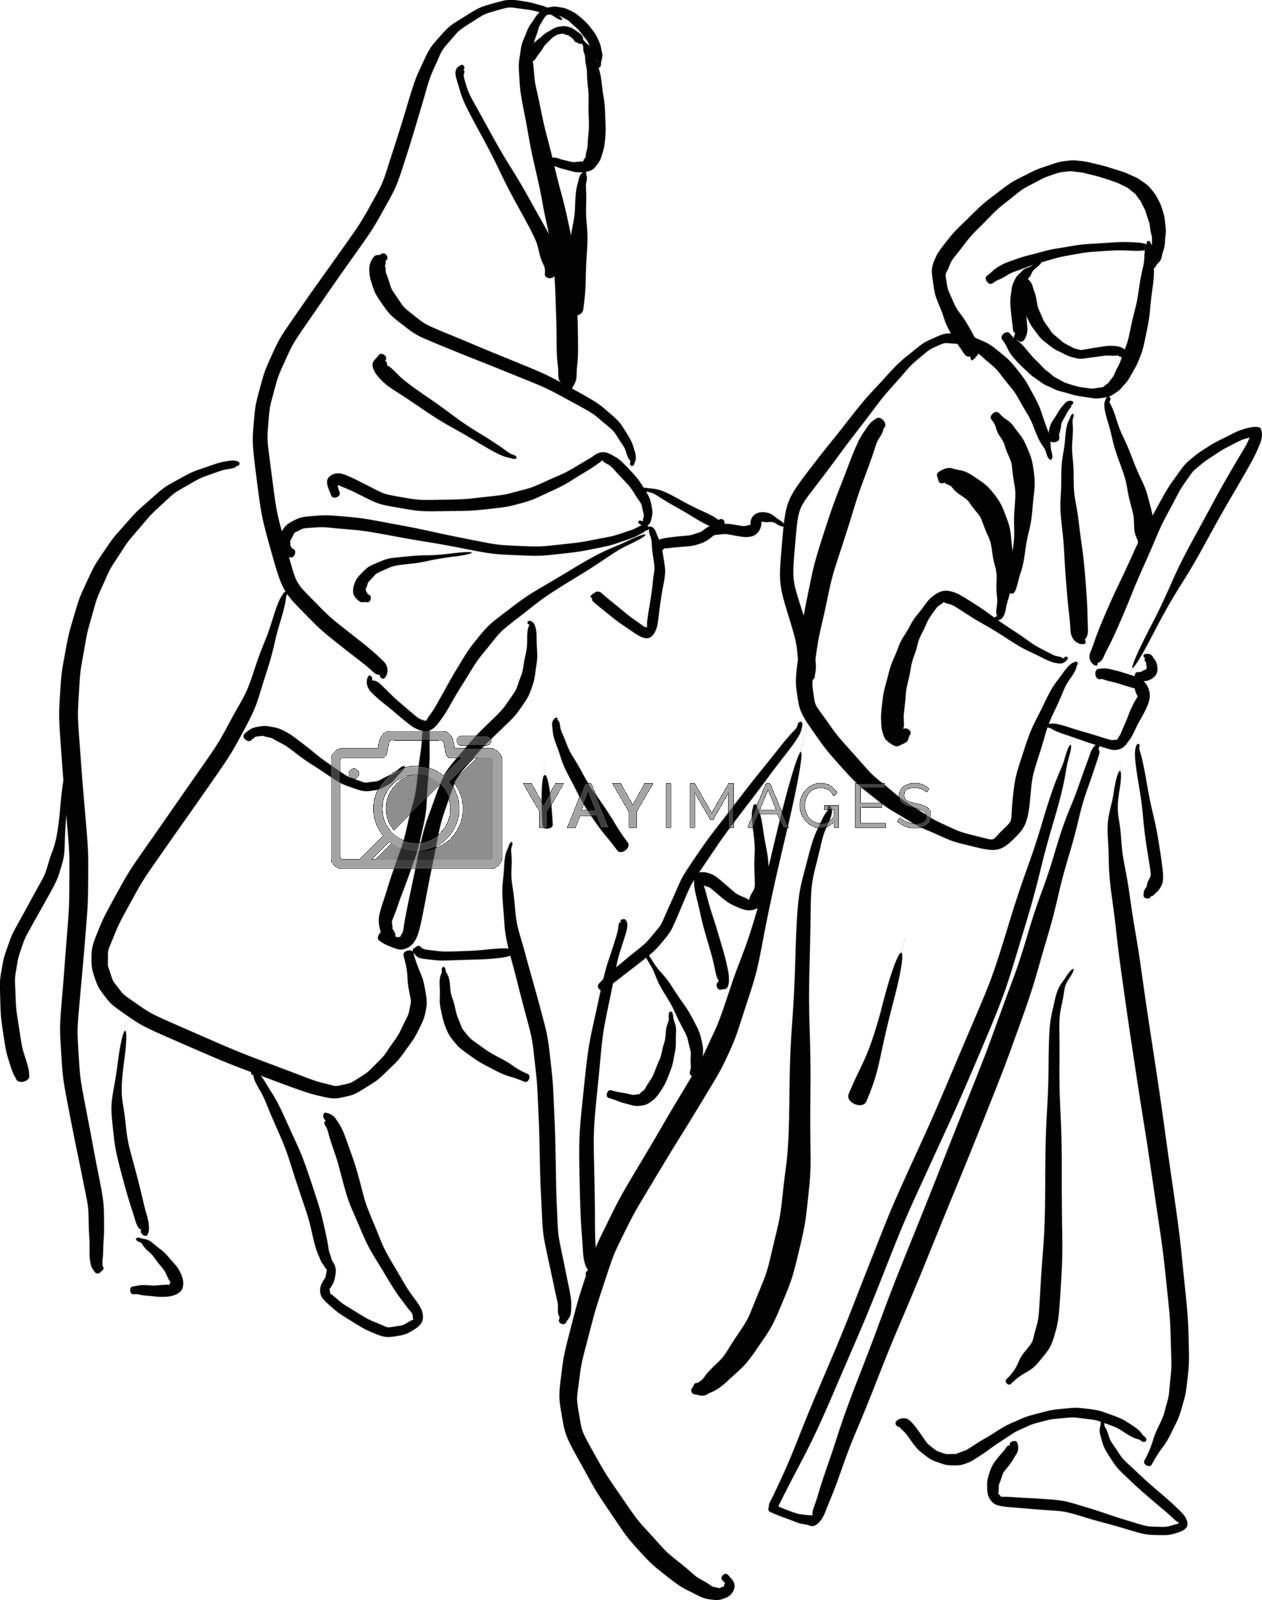 Mary and Joseph in the dessert with a donkey on Christmas Eve searching for a place to stay vector illustration sketch doodle hand drawn with black lines isolated on white background